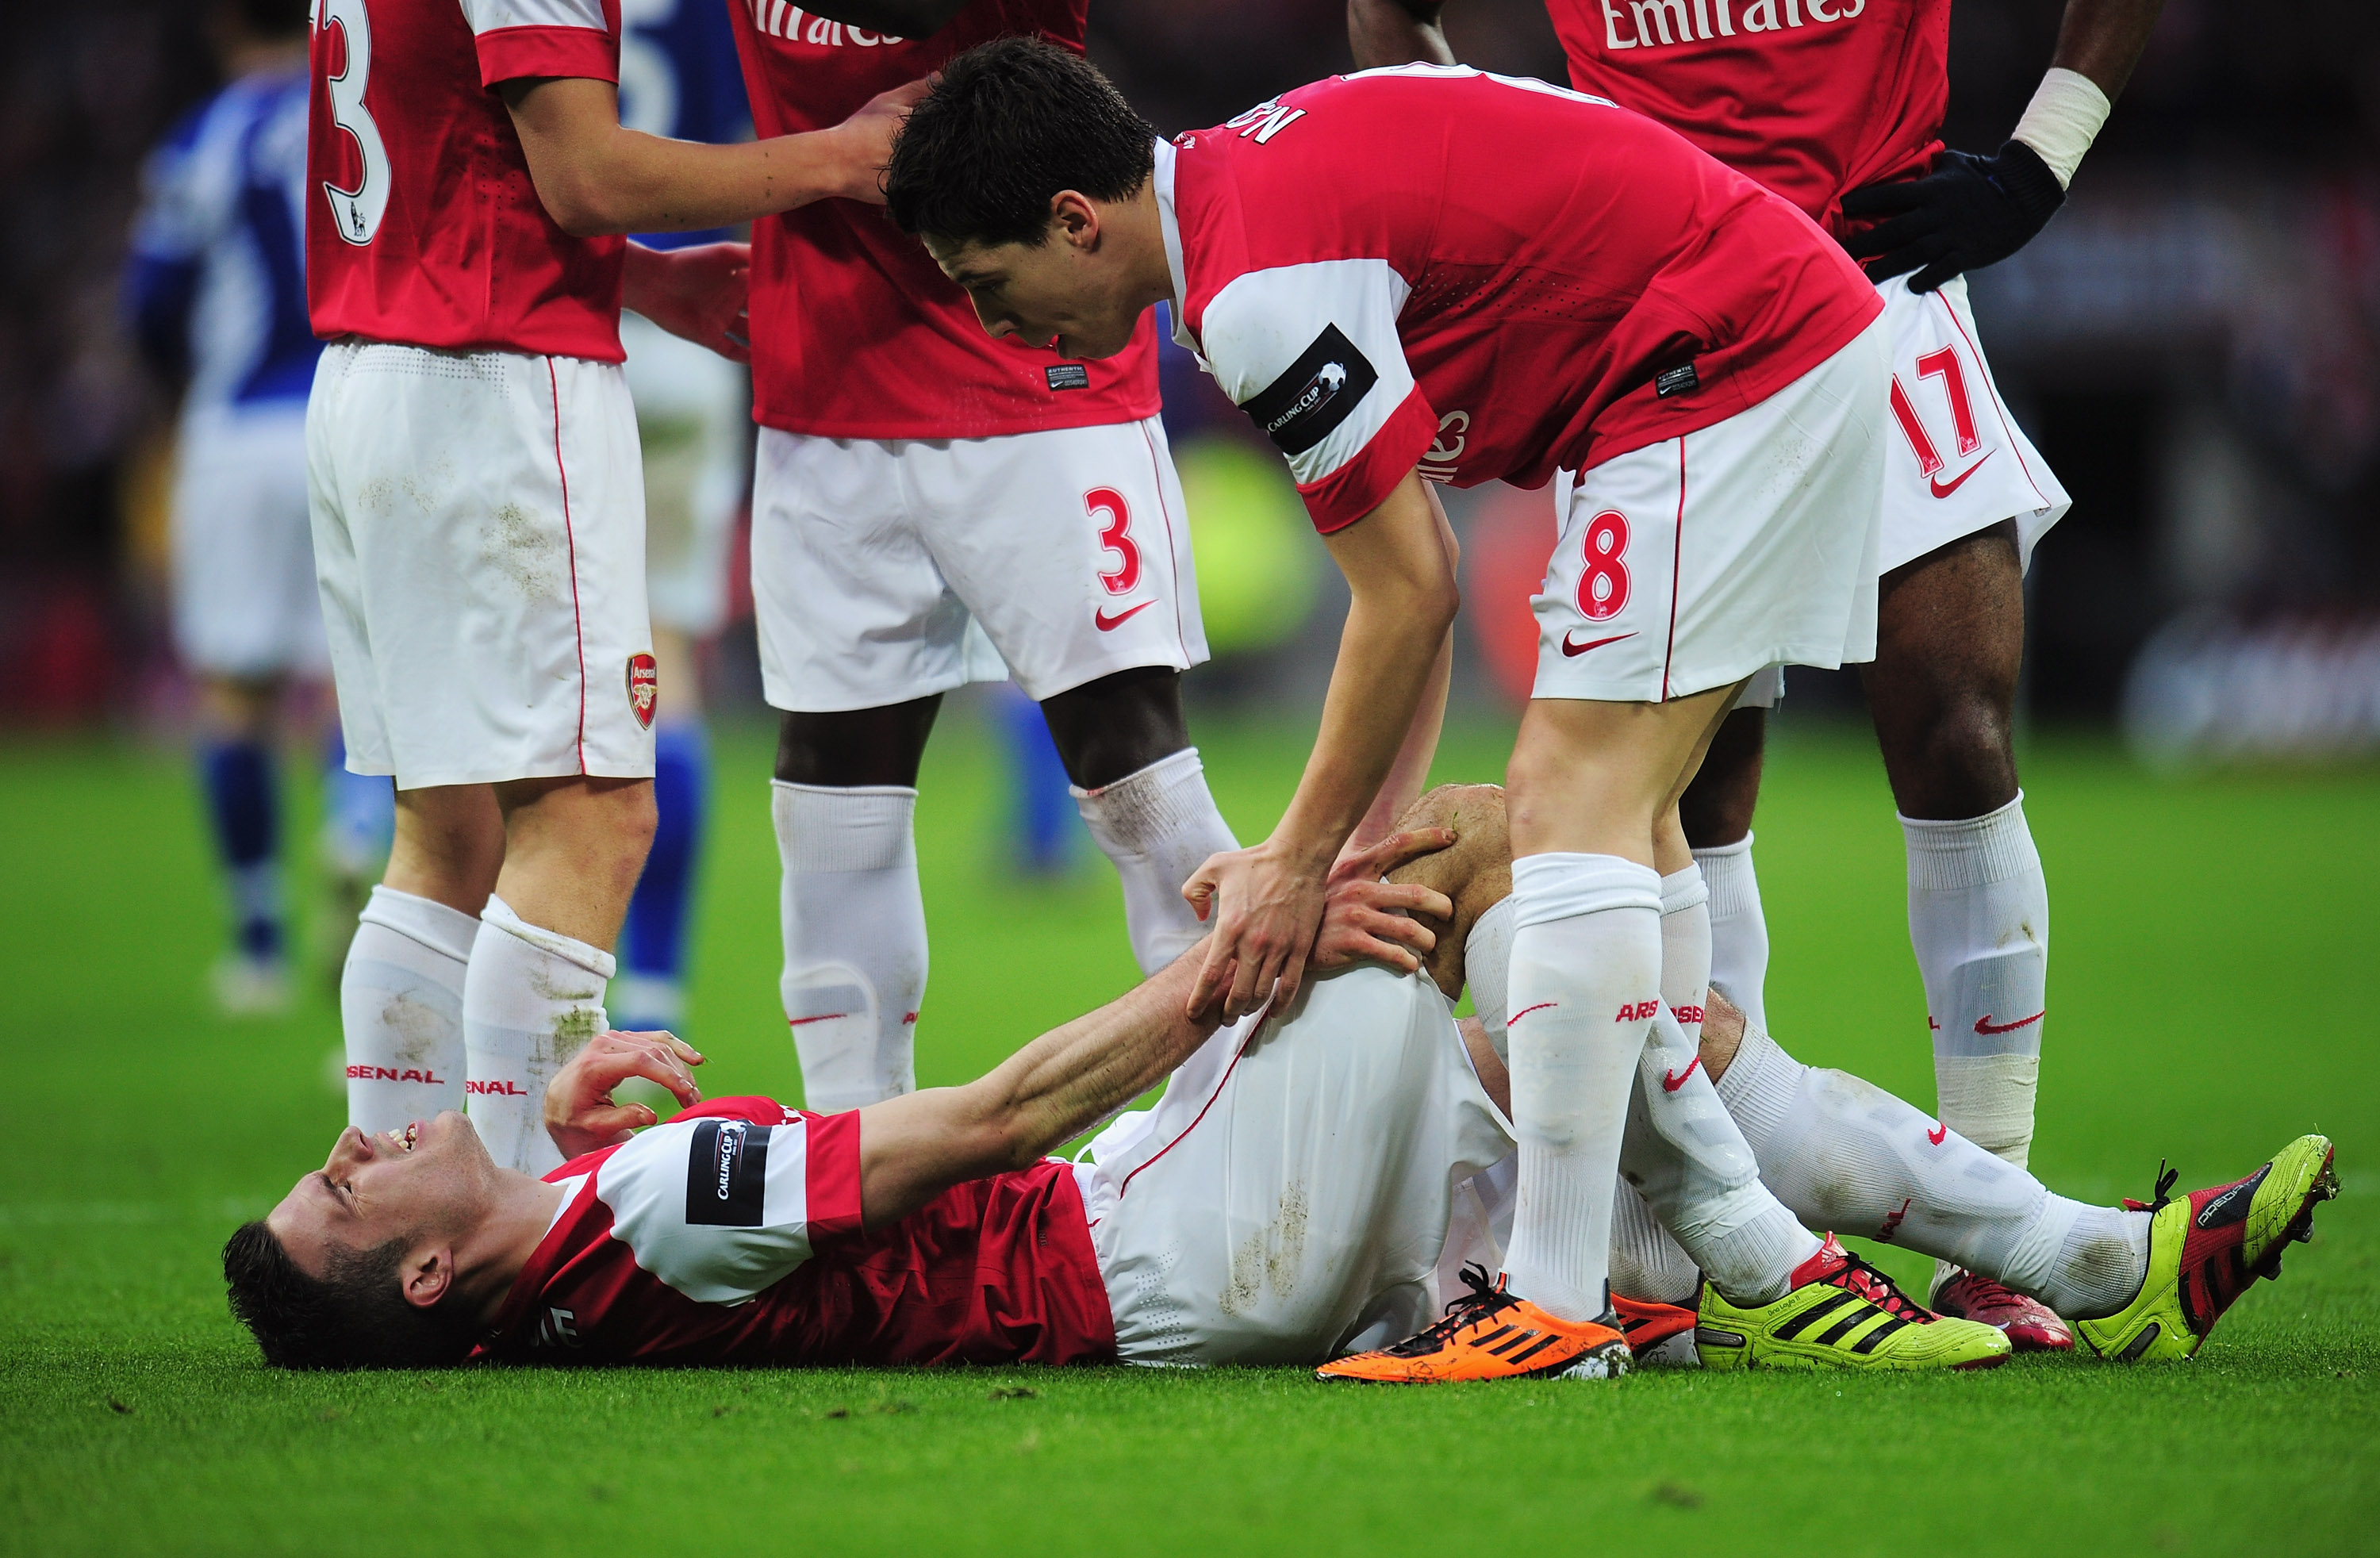 LONDON, ENGLAND - FEBRUARY 27: Robin van Persie of Arsenal lies on the ground as he is spoken to by Samir Nasri during the Carling Cup Final between Arsenal and Birmingham City at Wembley Stadium on February 27, 2011 in London, England.  (Photo by Shaun B